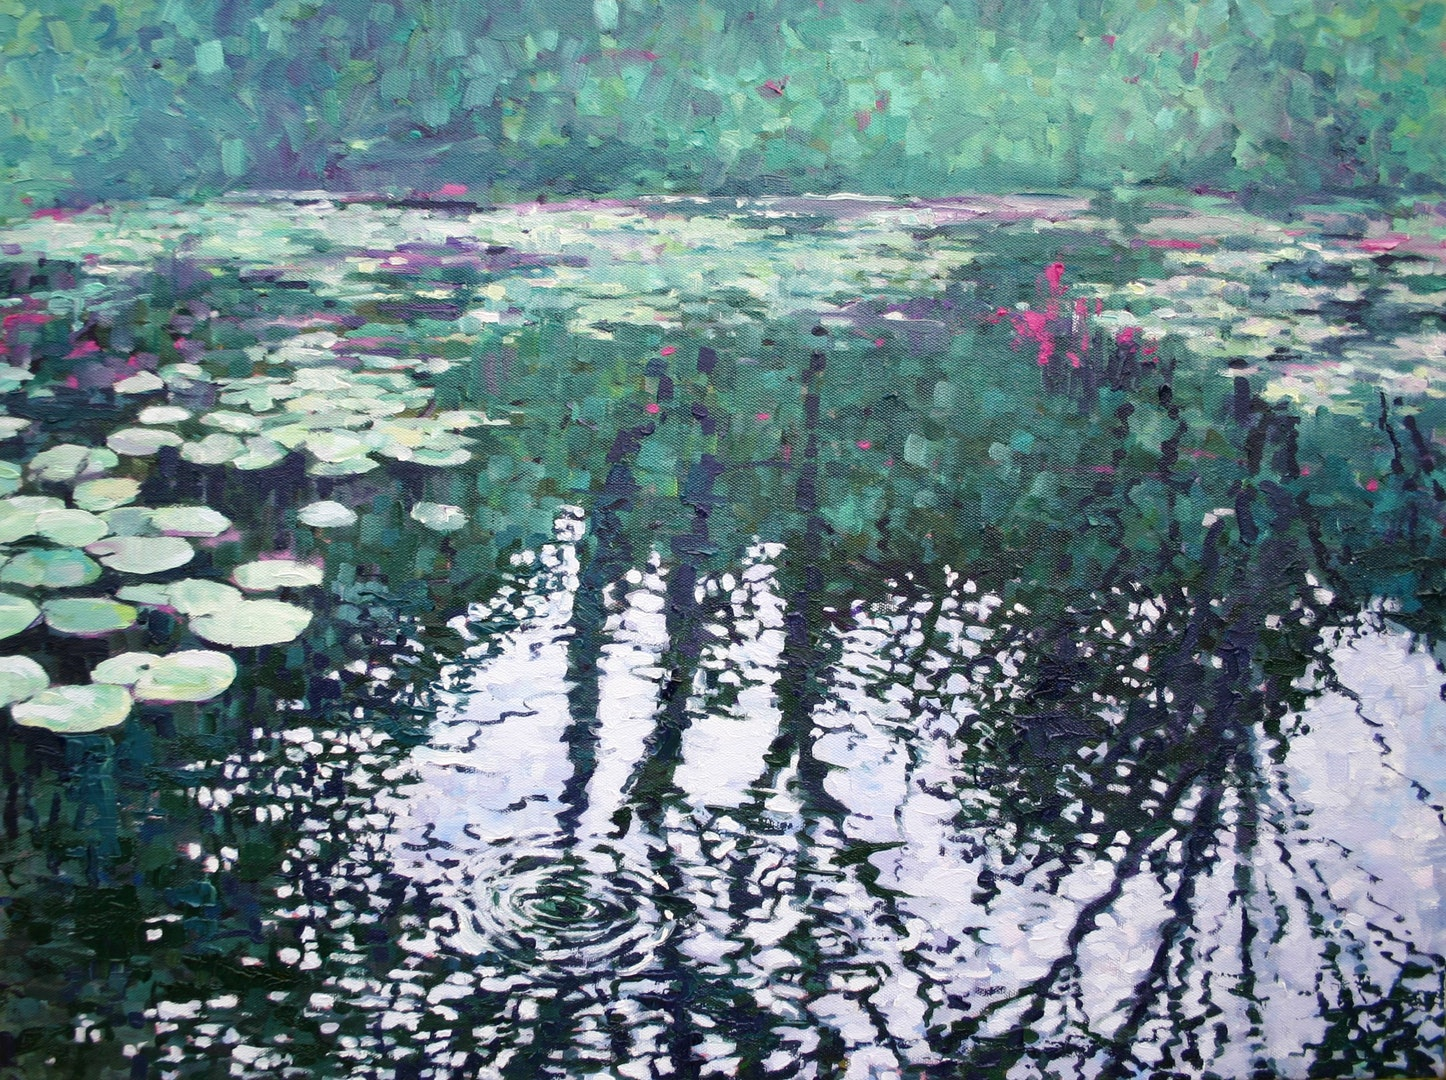 'Lily Pond Reflections', Zoe Norman, Oil on stretched cotton canvas, 41 x 61 cm